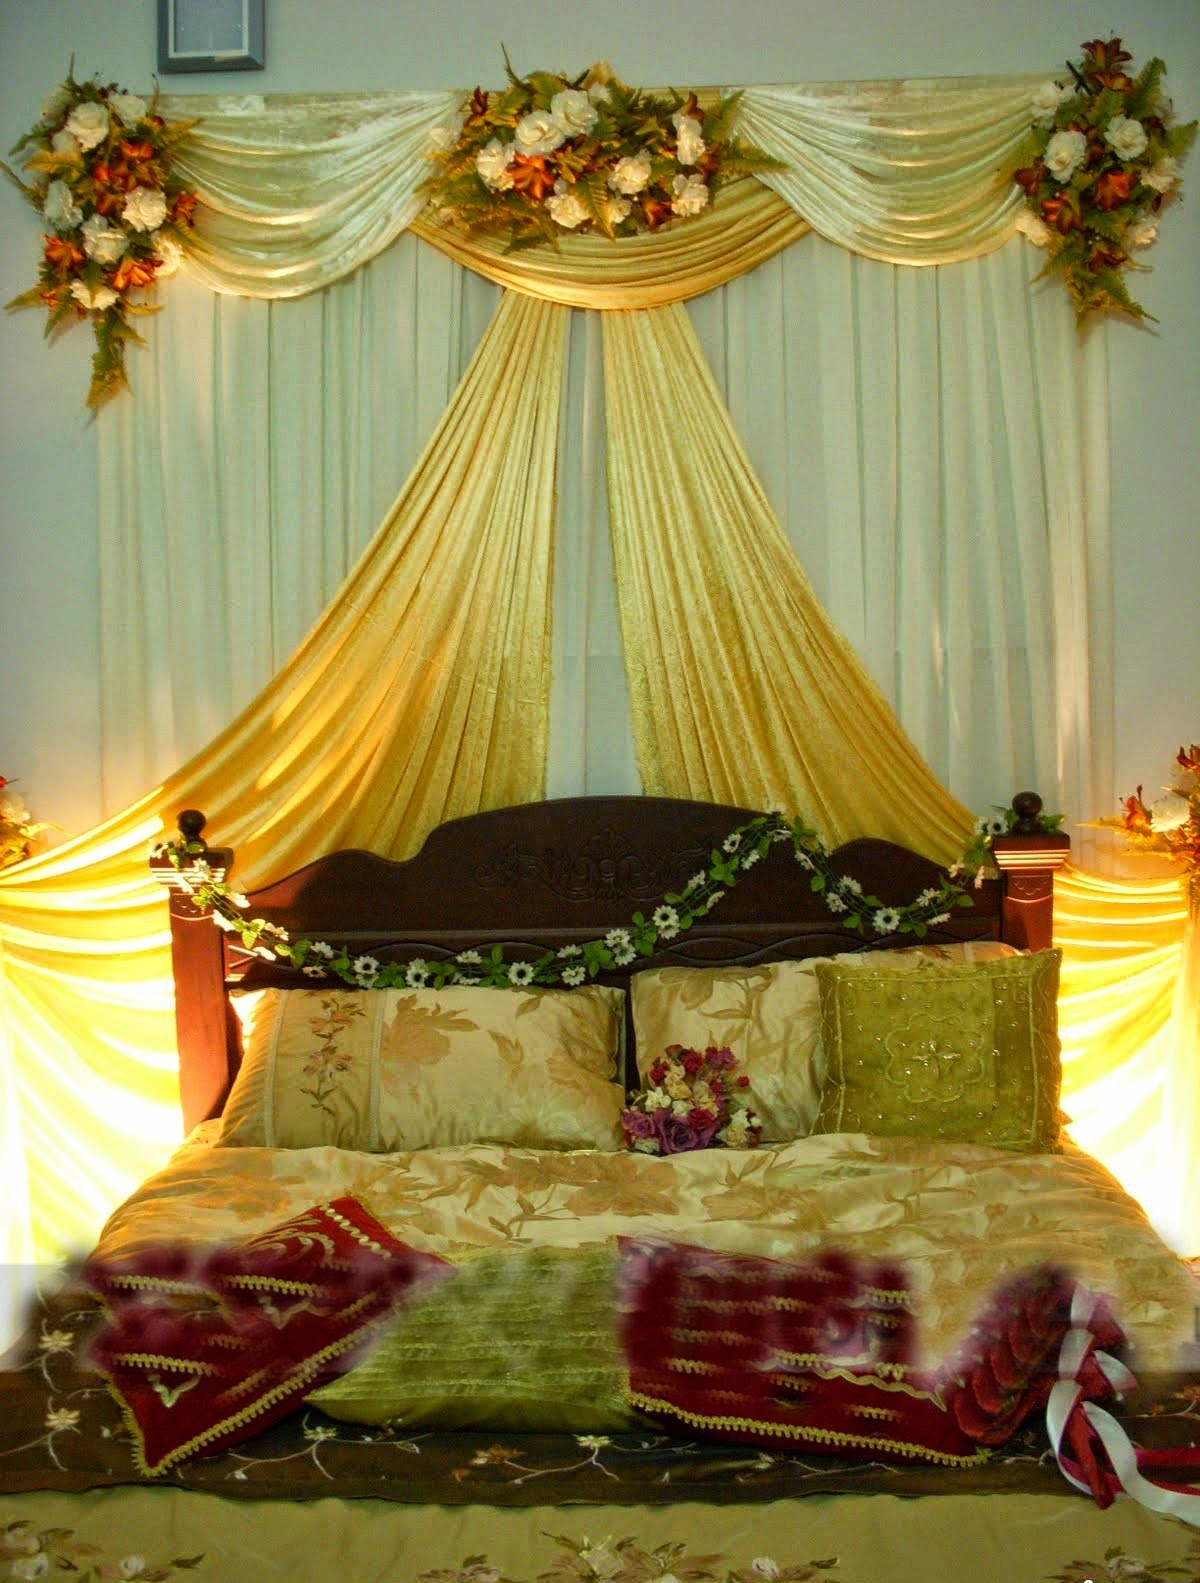 Romantic bedroom decoration ideas for wedding night for Beautifully decorated beds